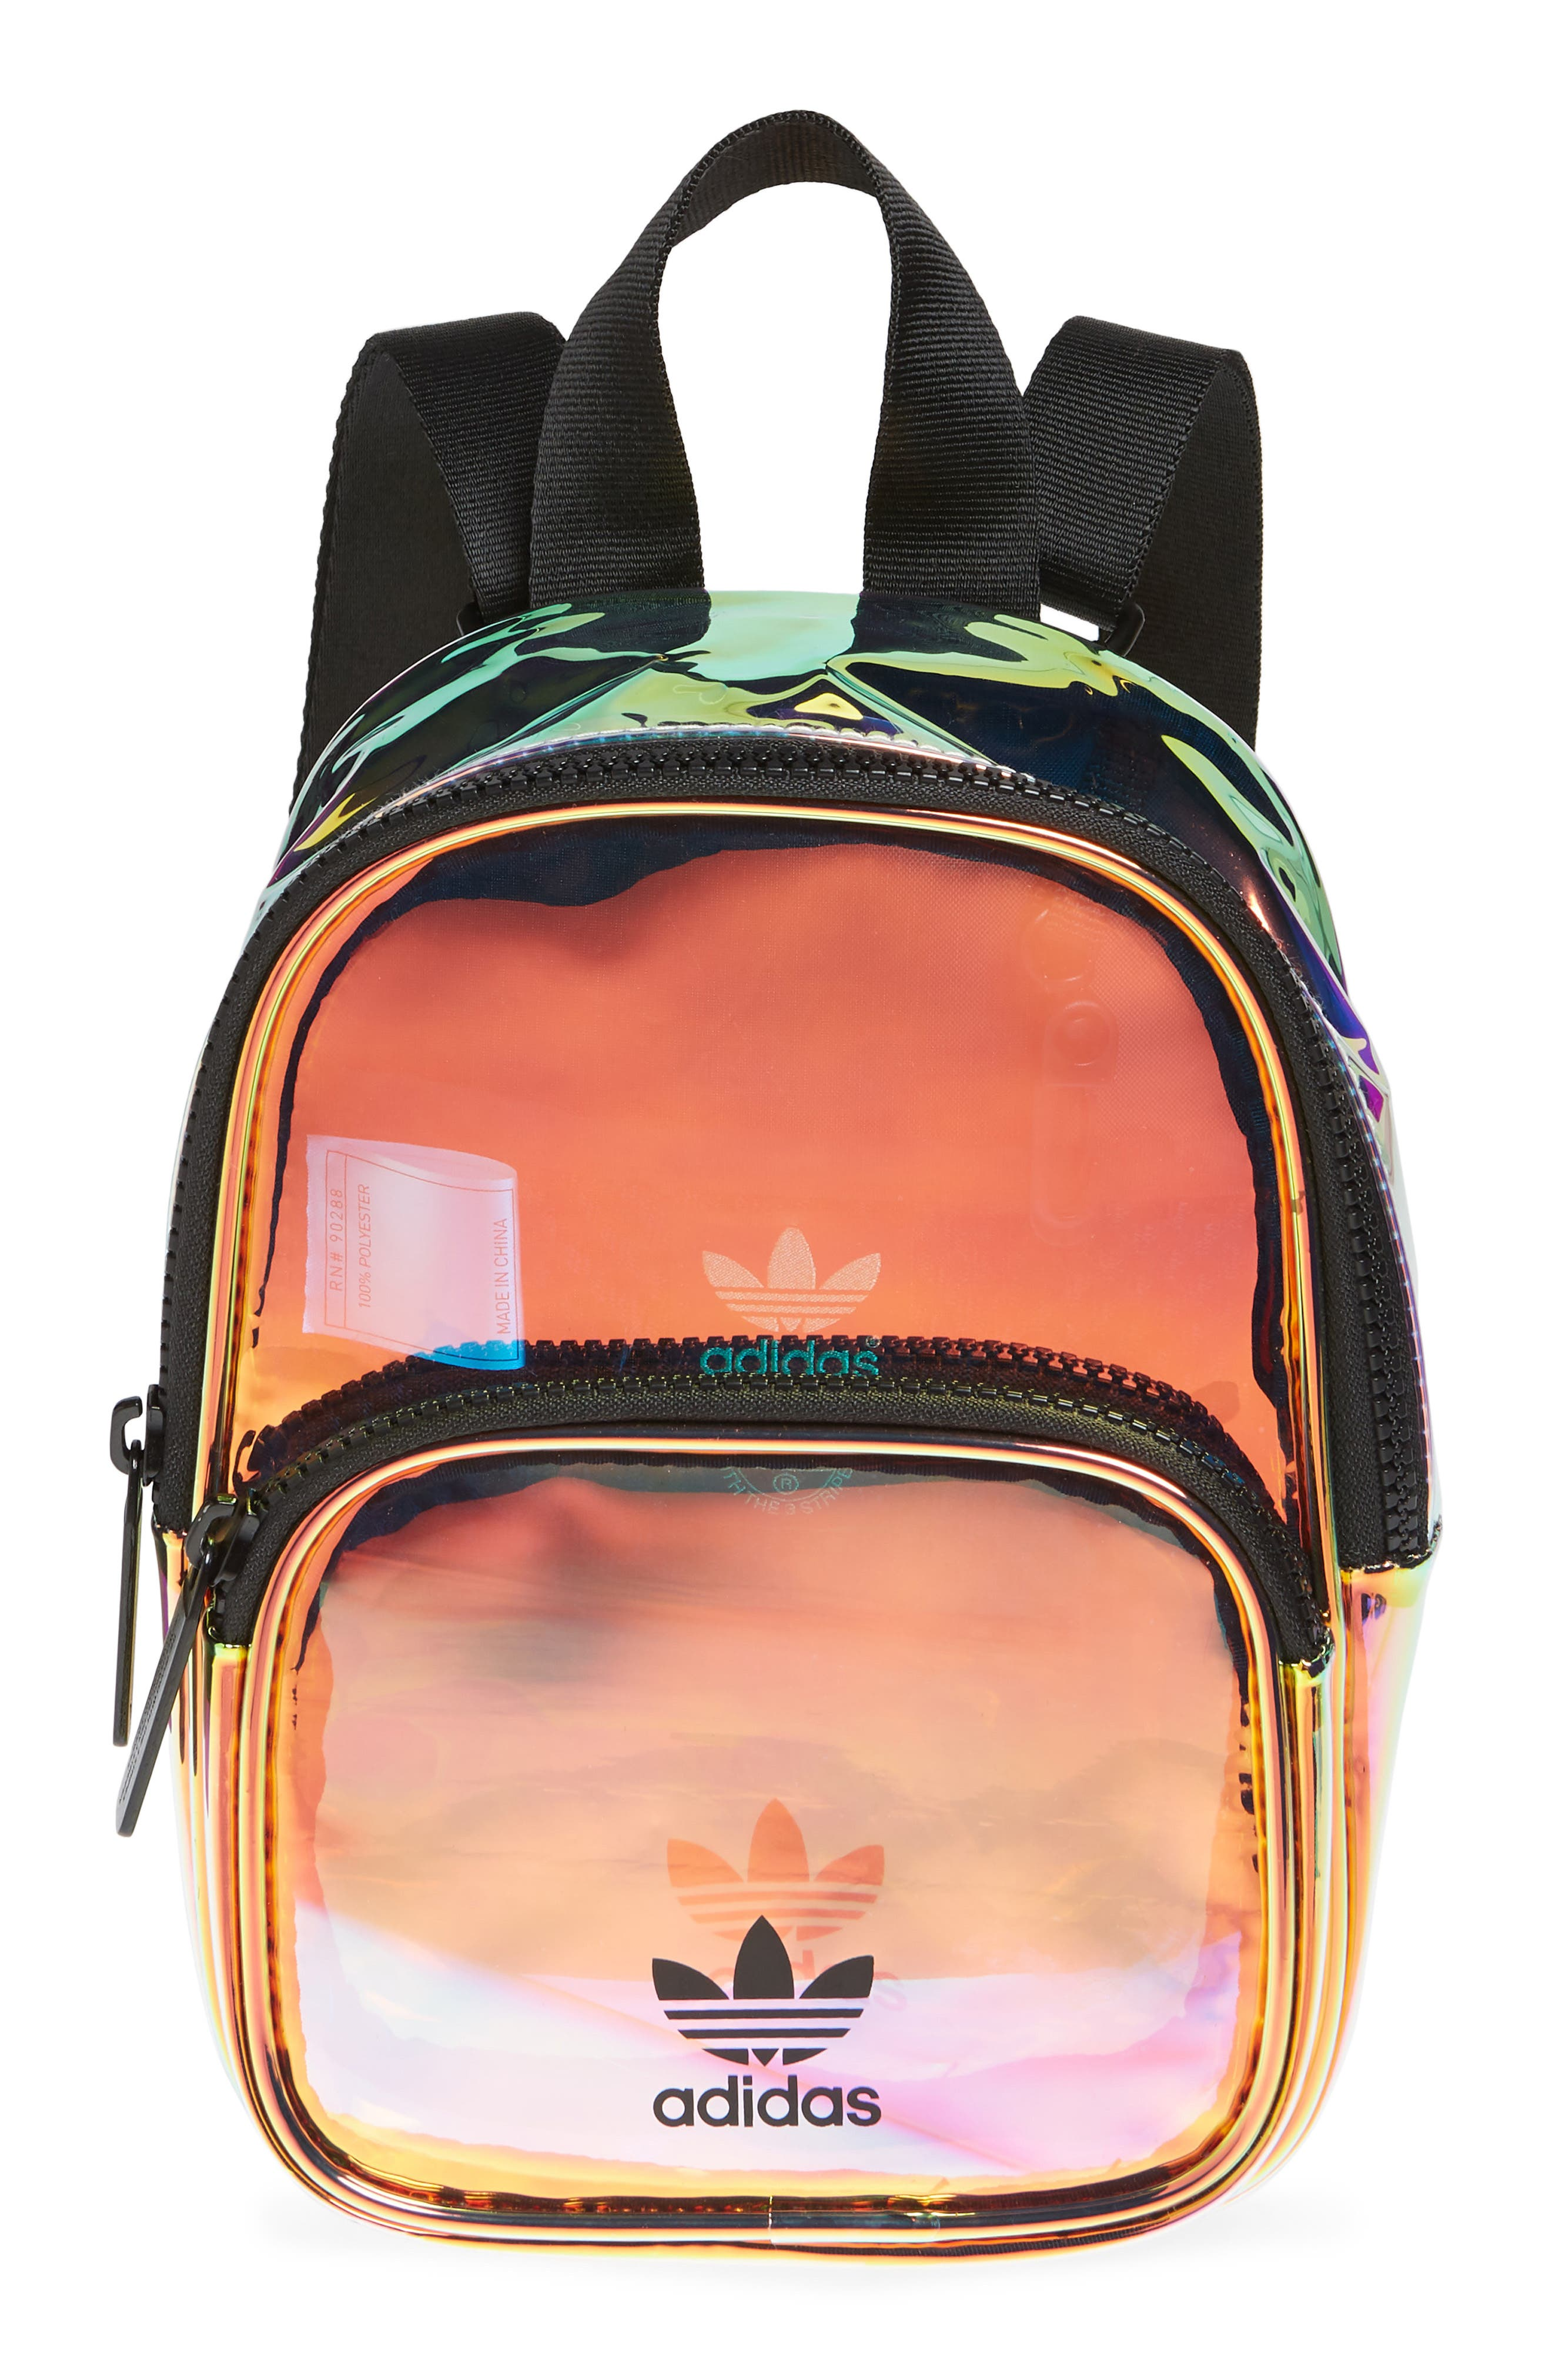 ADIDAS, Ori Mini Holographic Clear Backpack, Main thumbnail 1, color, 710